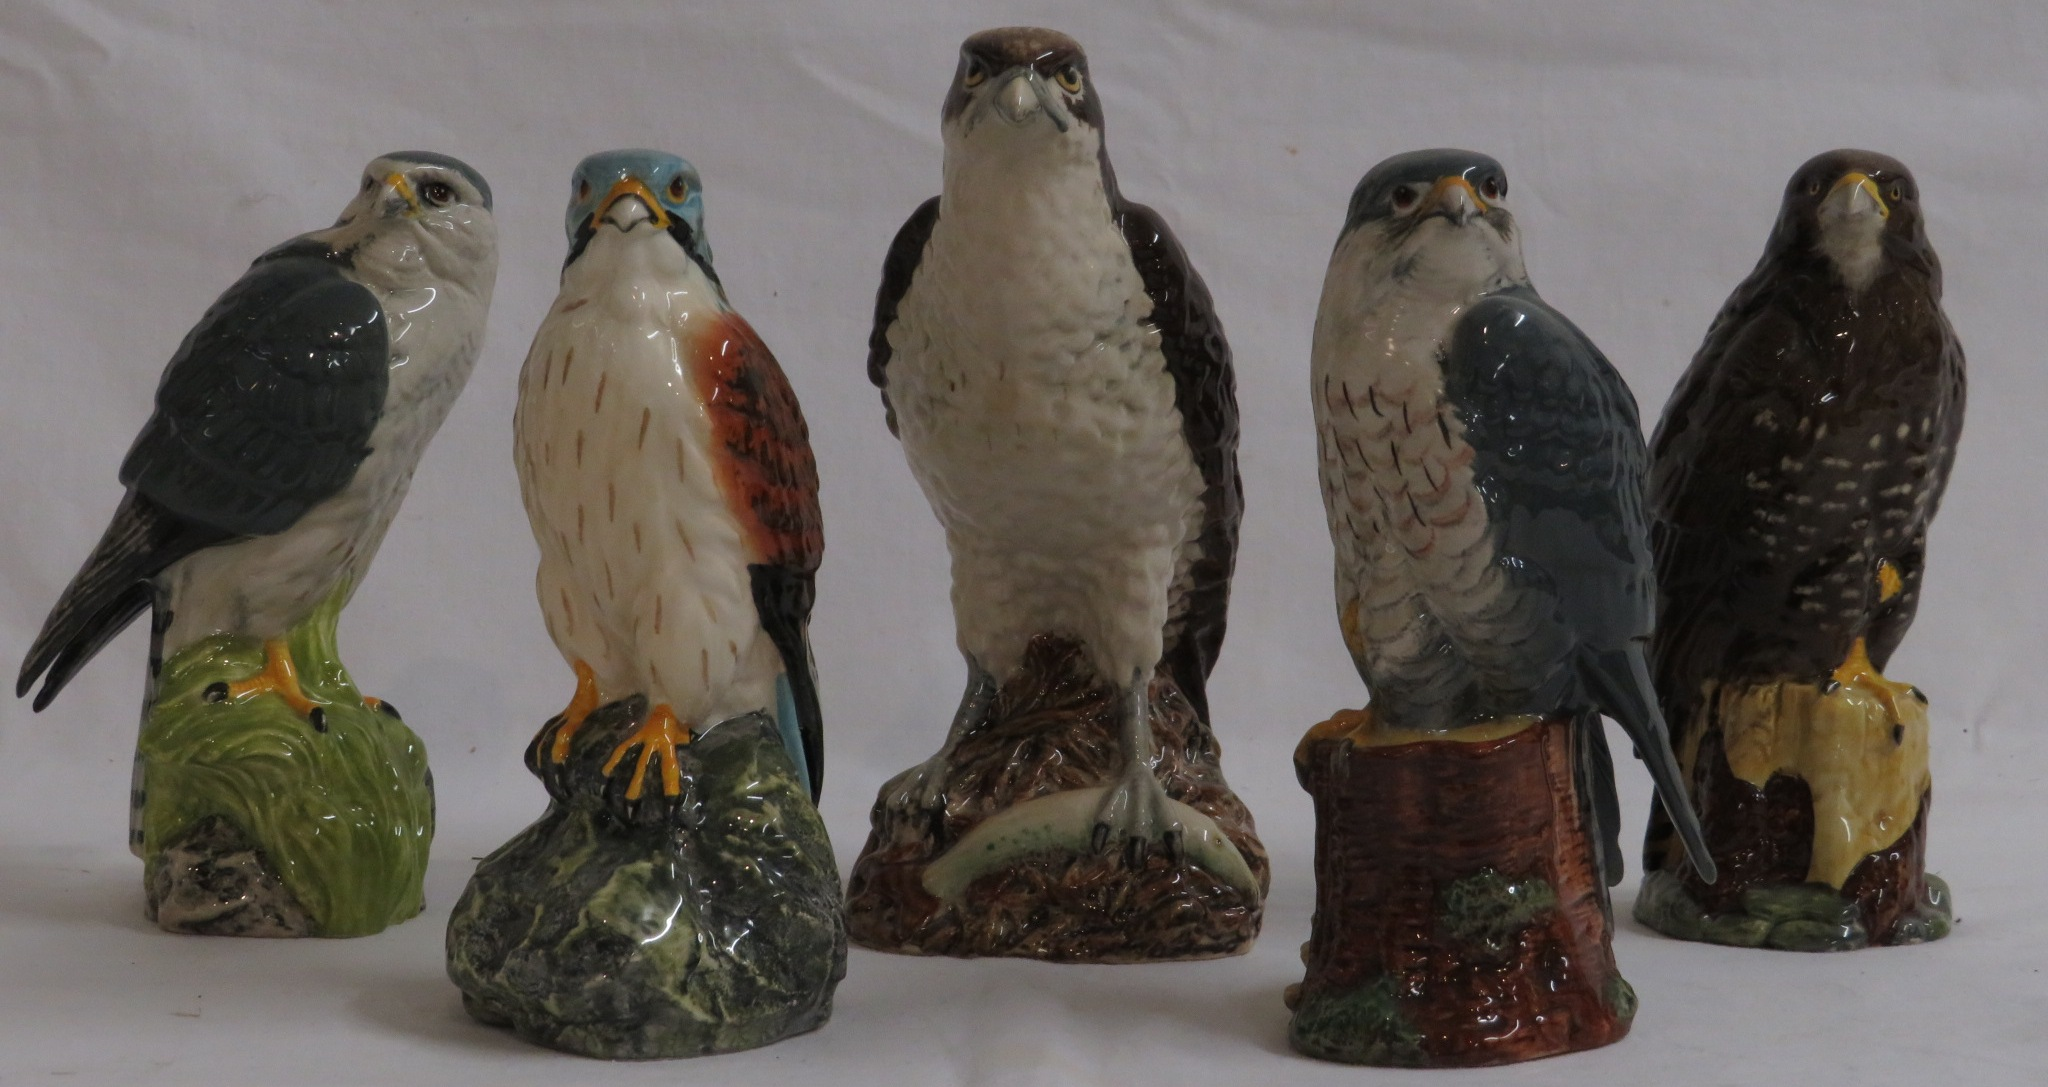 Lot 59 - Four Royal Doulton Whyte & Mackay 200ml whisky decanters modelled by John G. Tongue 1979 as birds of